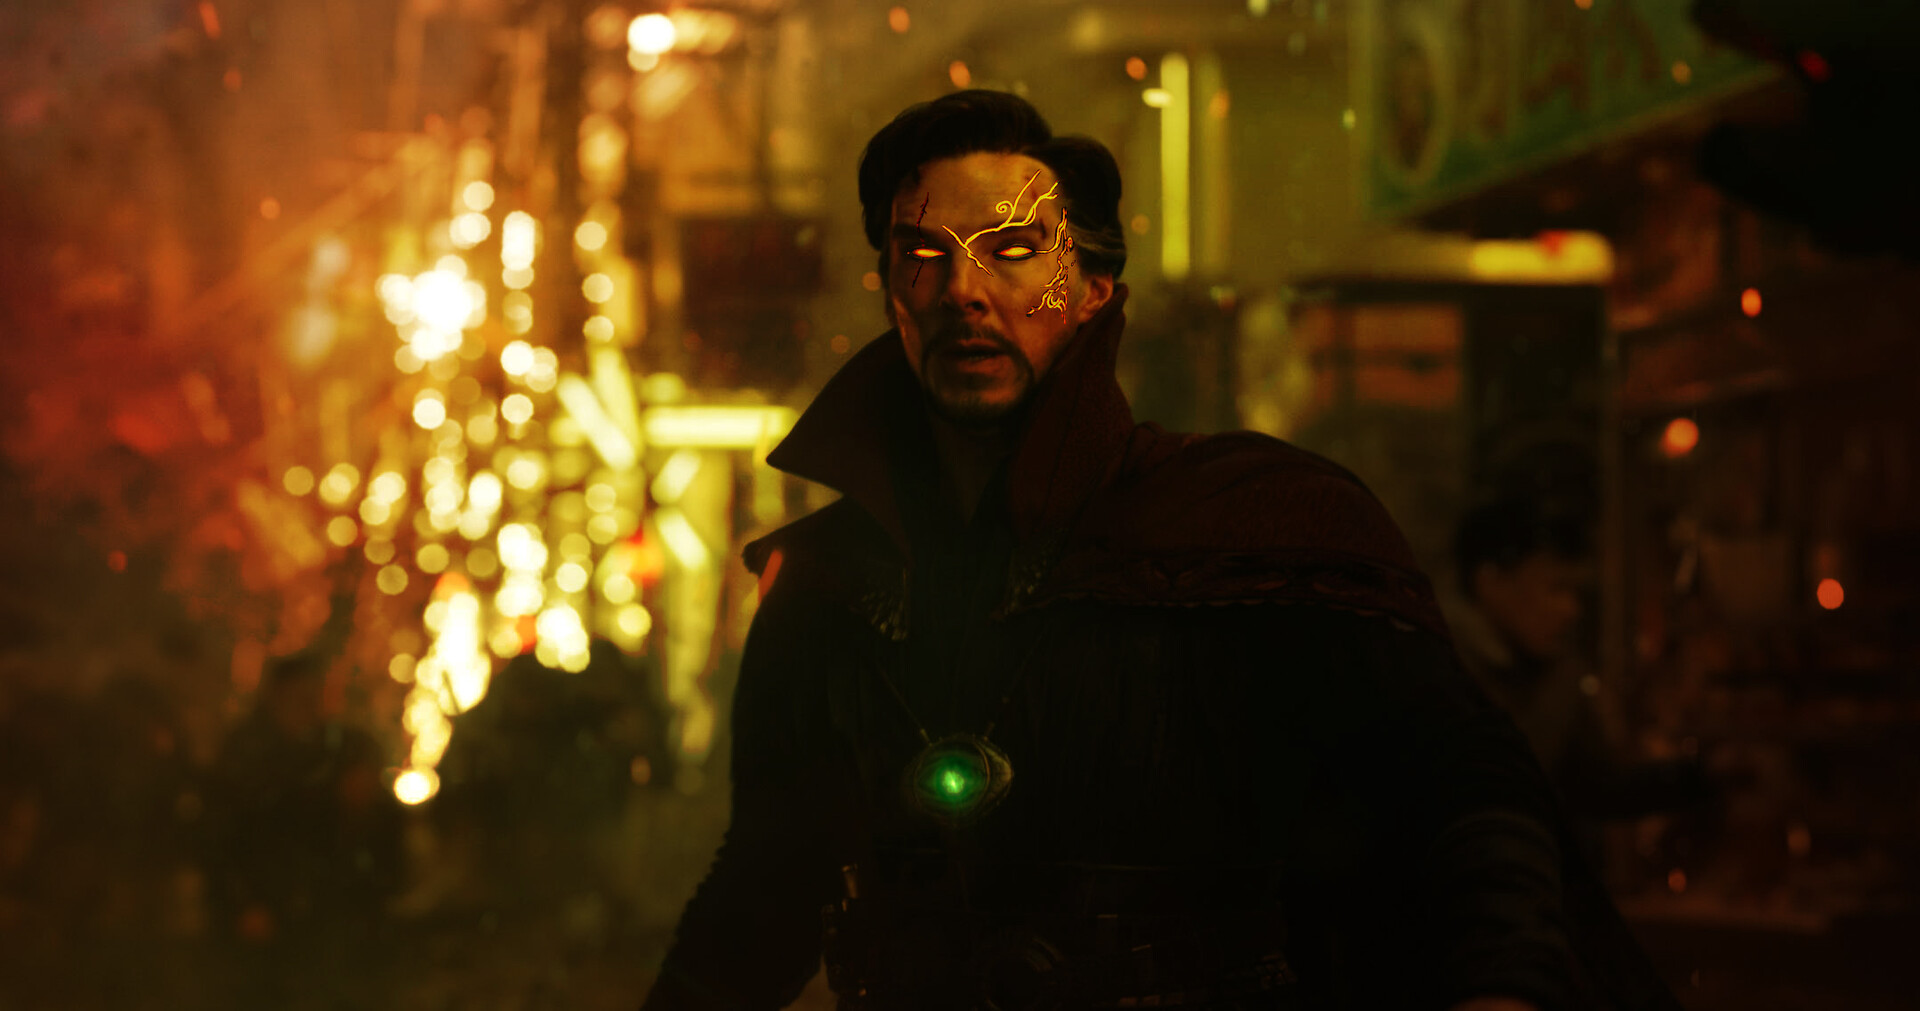 the-arbiter-dark-doctor-strange.jpg?1587